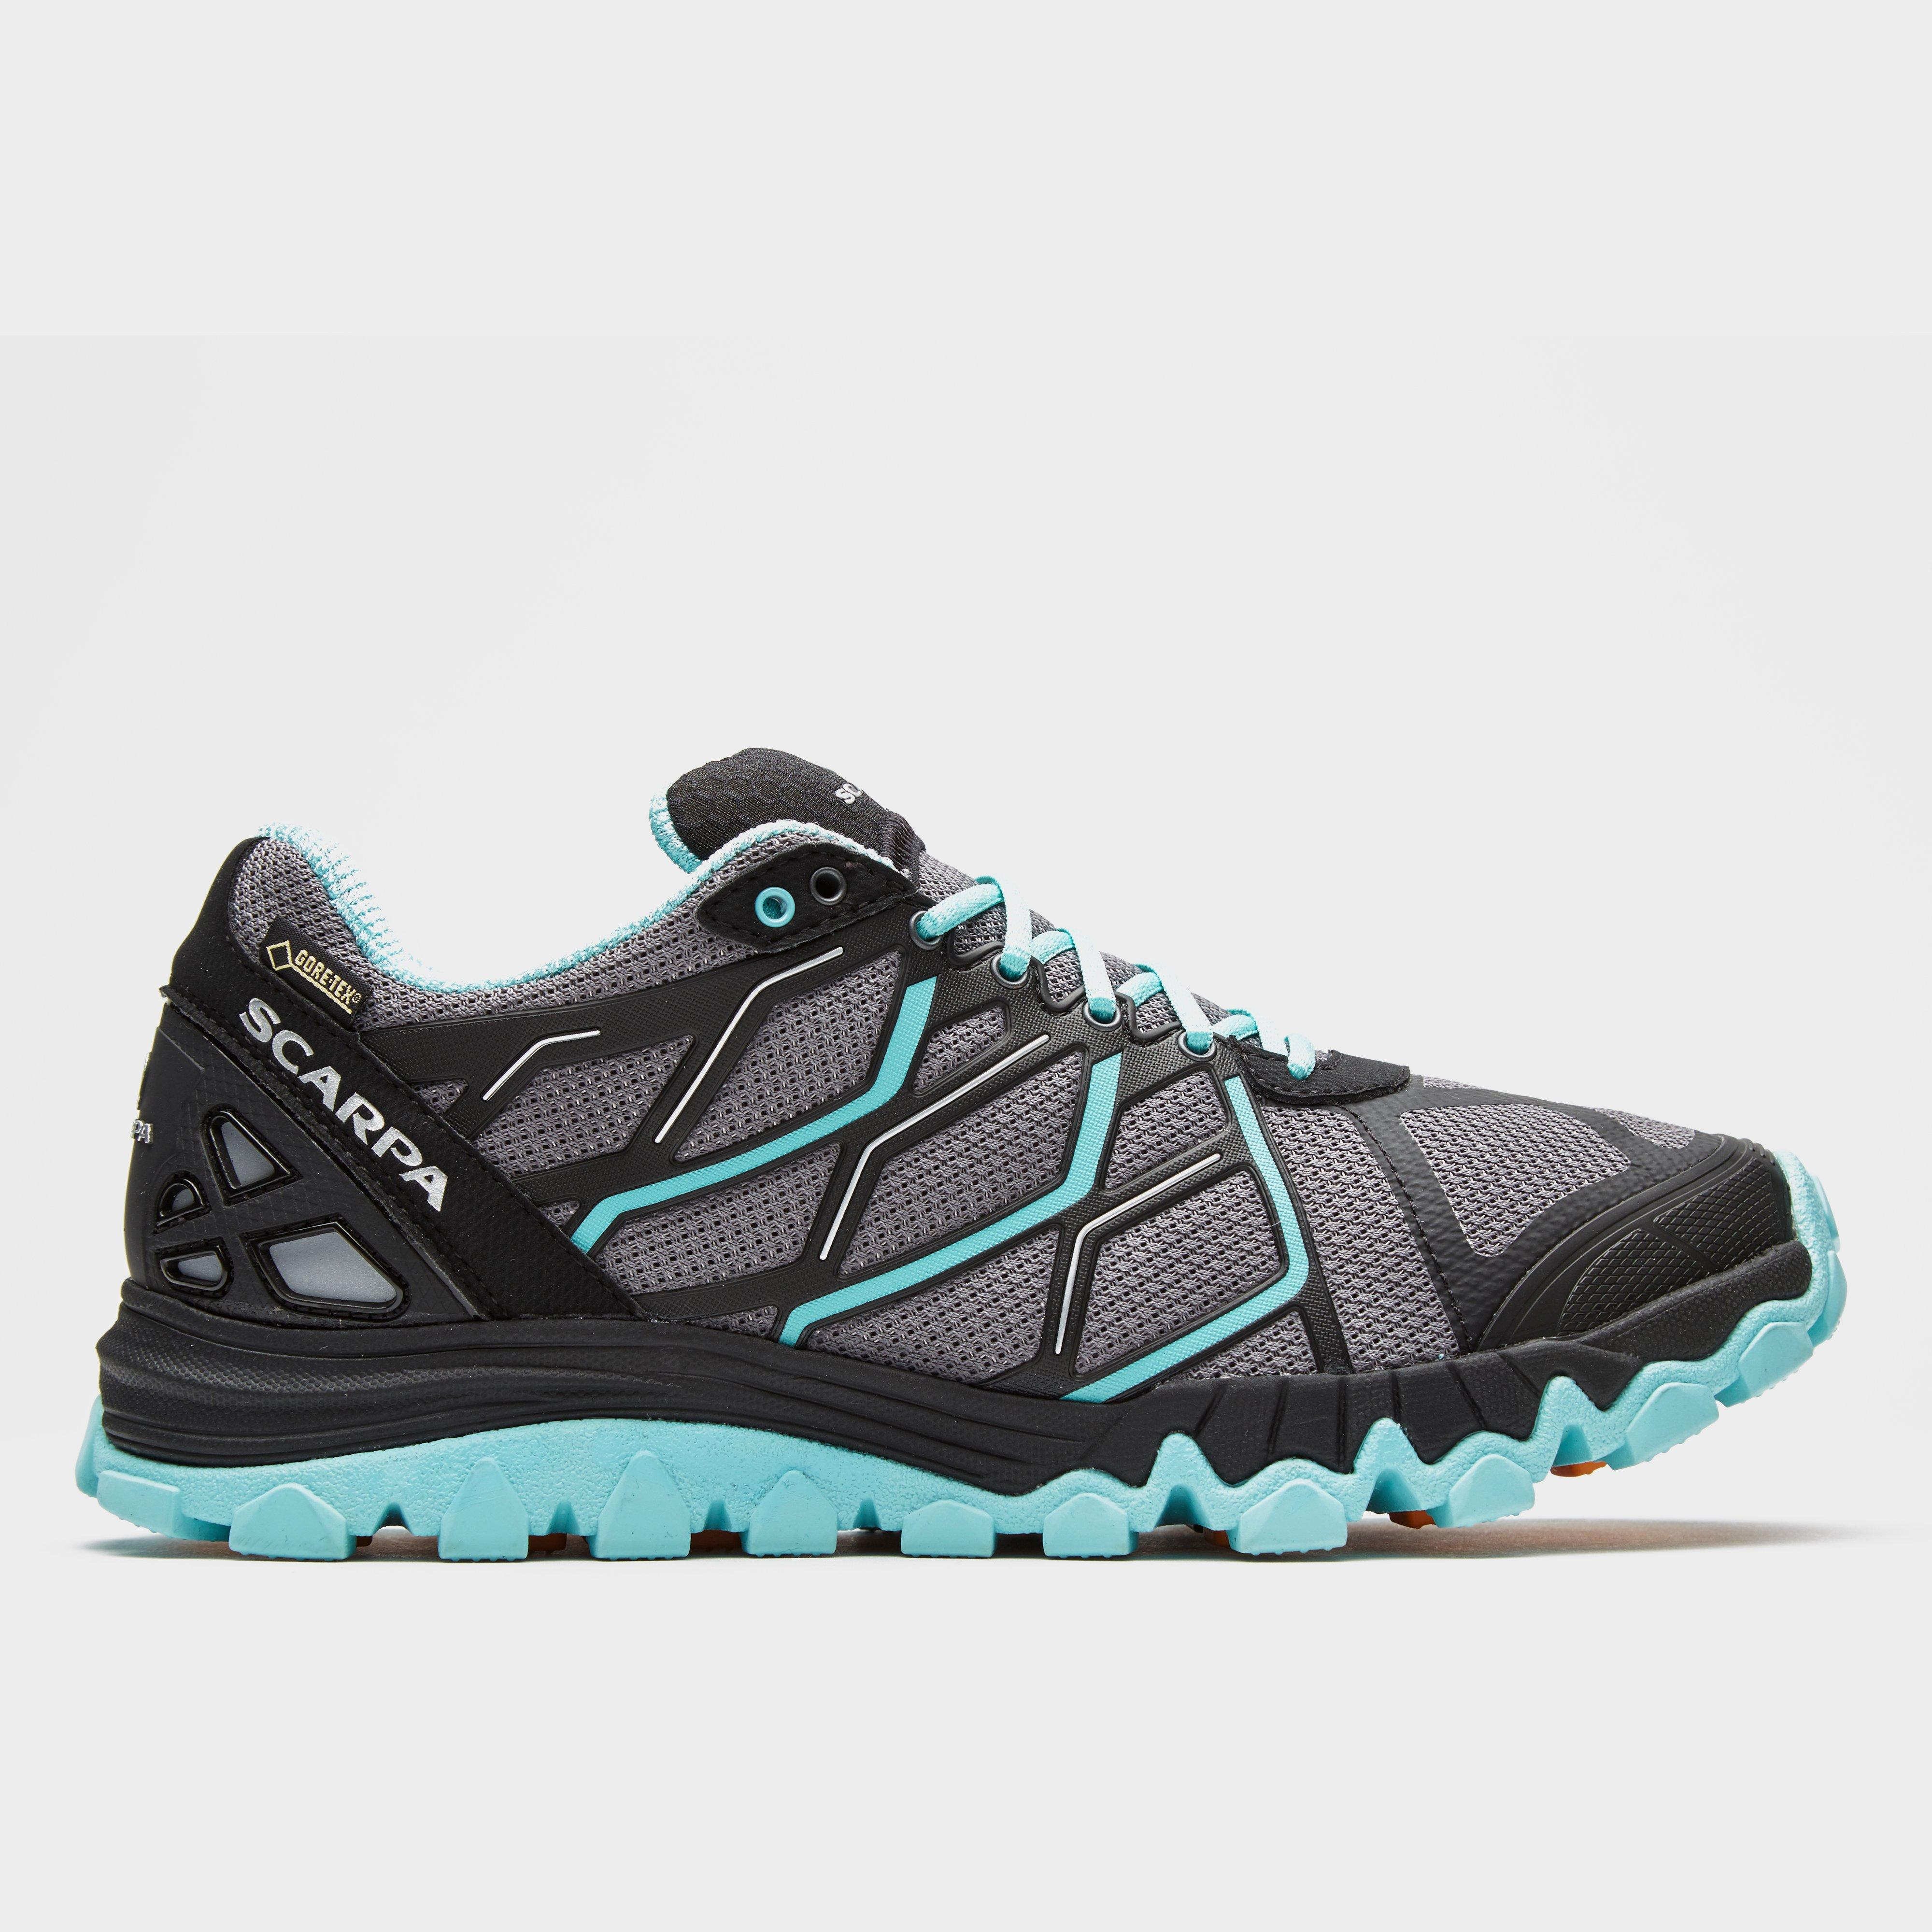 Bargain Scarpa Women's Proton GORE-TEX Running Shoes, Grey Stockists